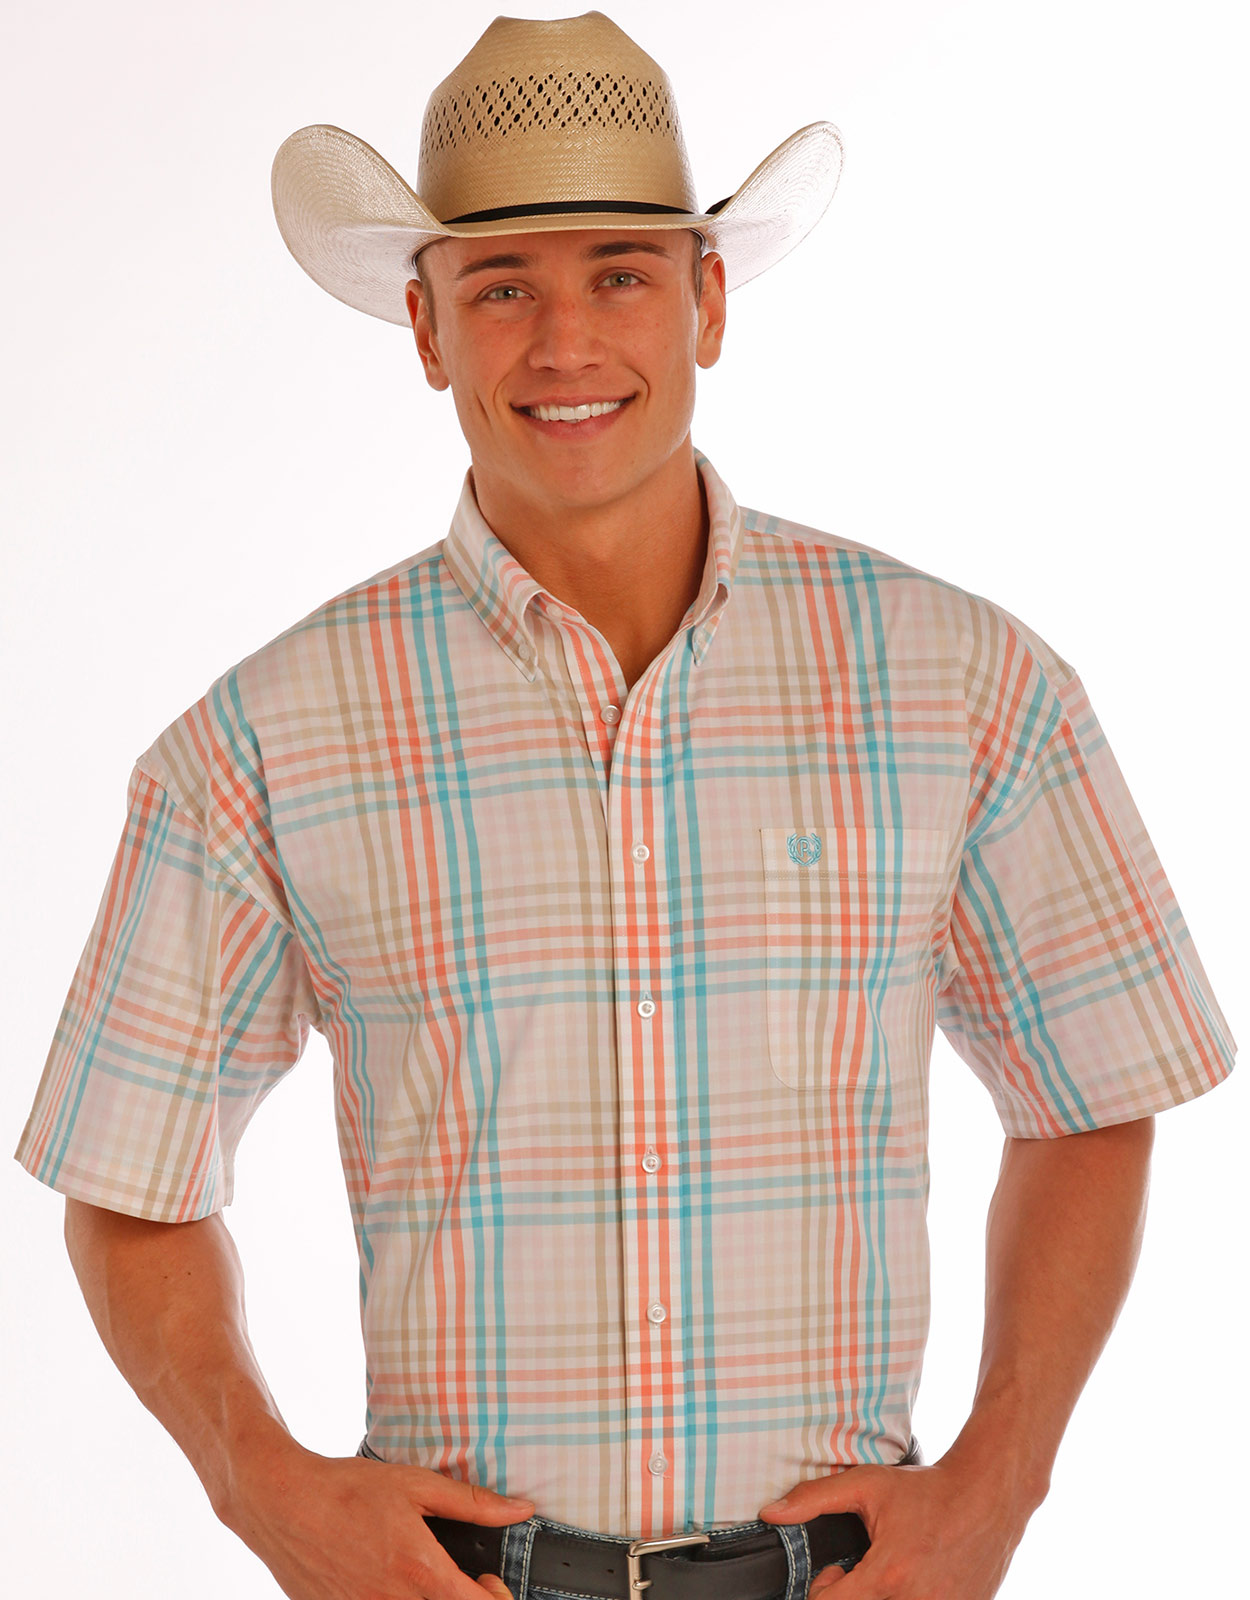 Panhandle Men's Short Sleeve Plaid Button Down Shirt - Natural